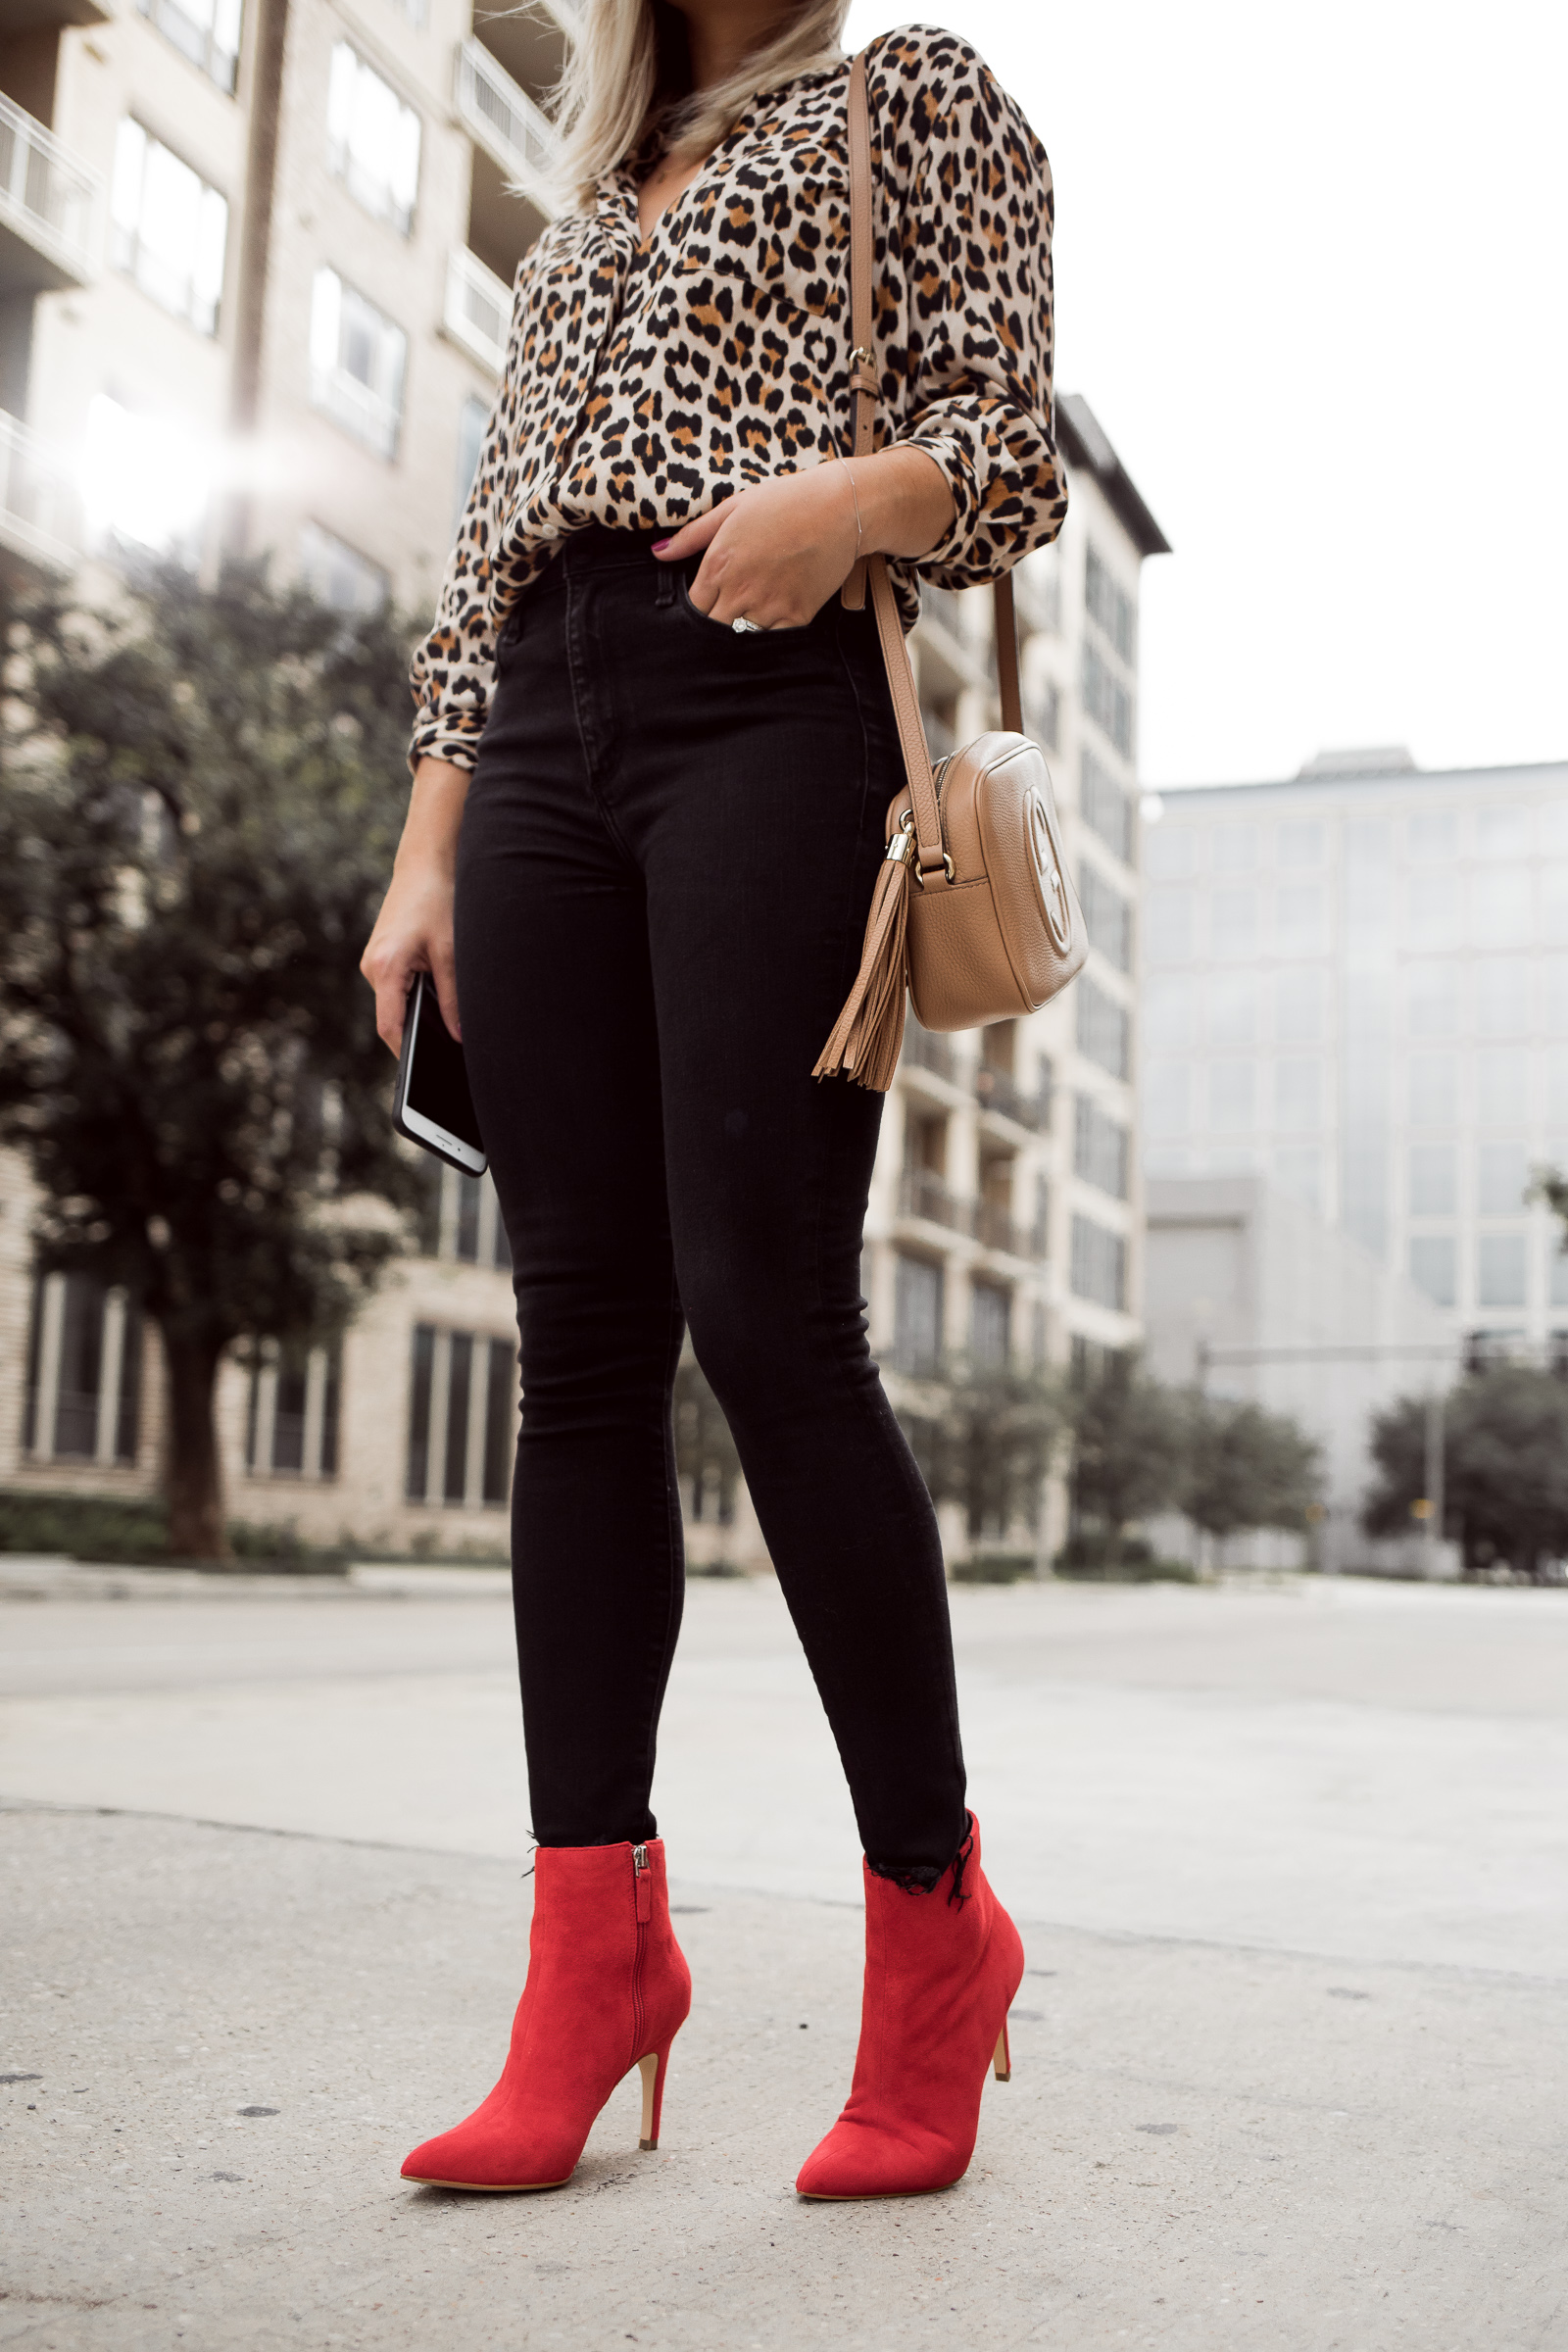 Houston fashion blogger Uptown with Elly Brown wears red ankle boots with a black skinny denim